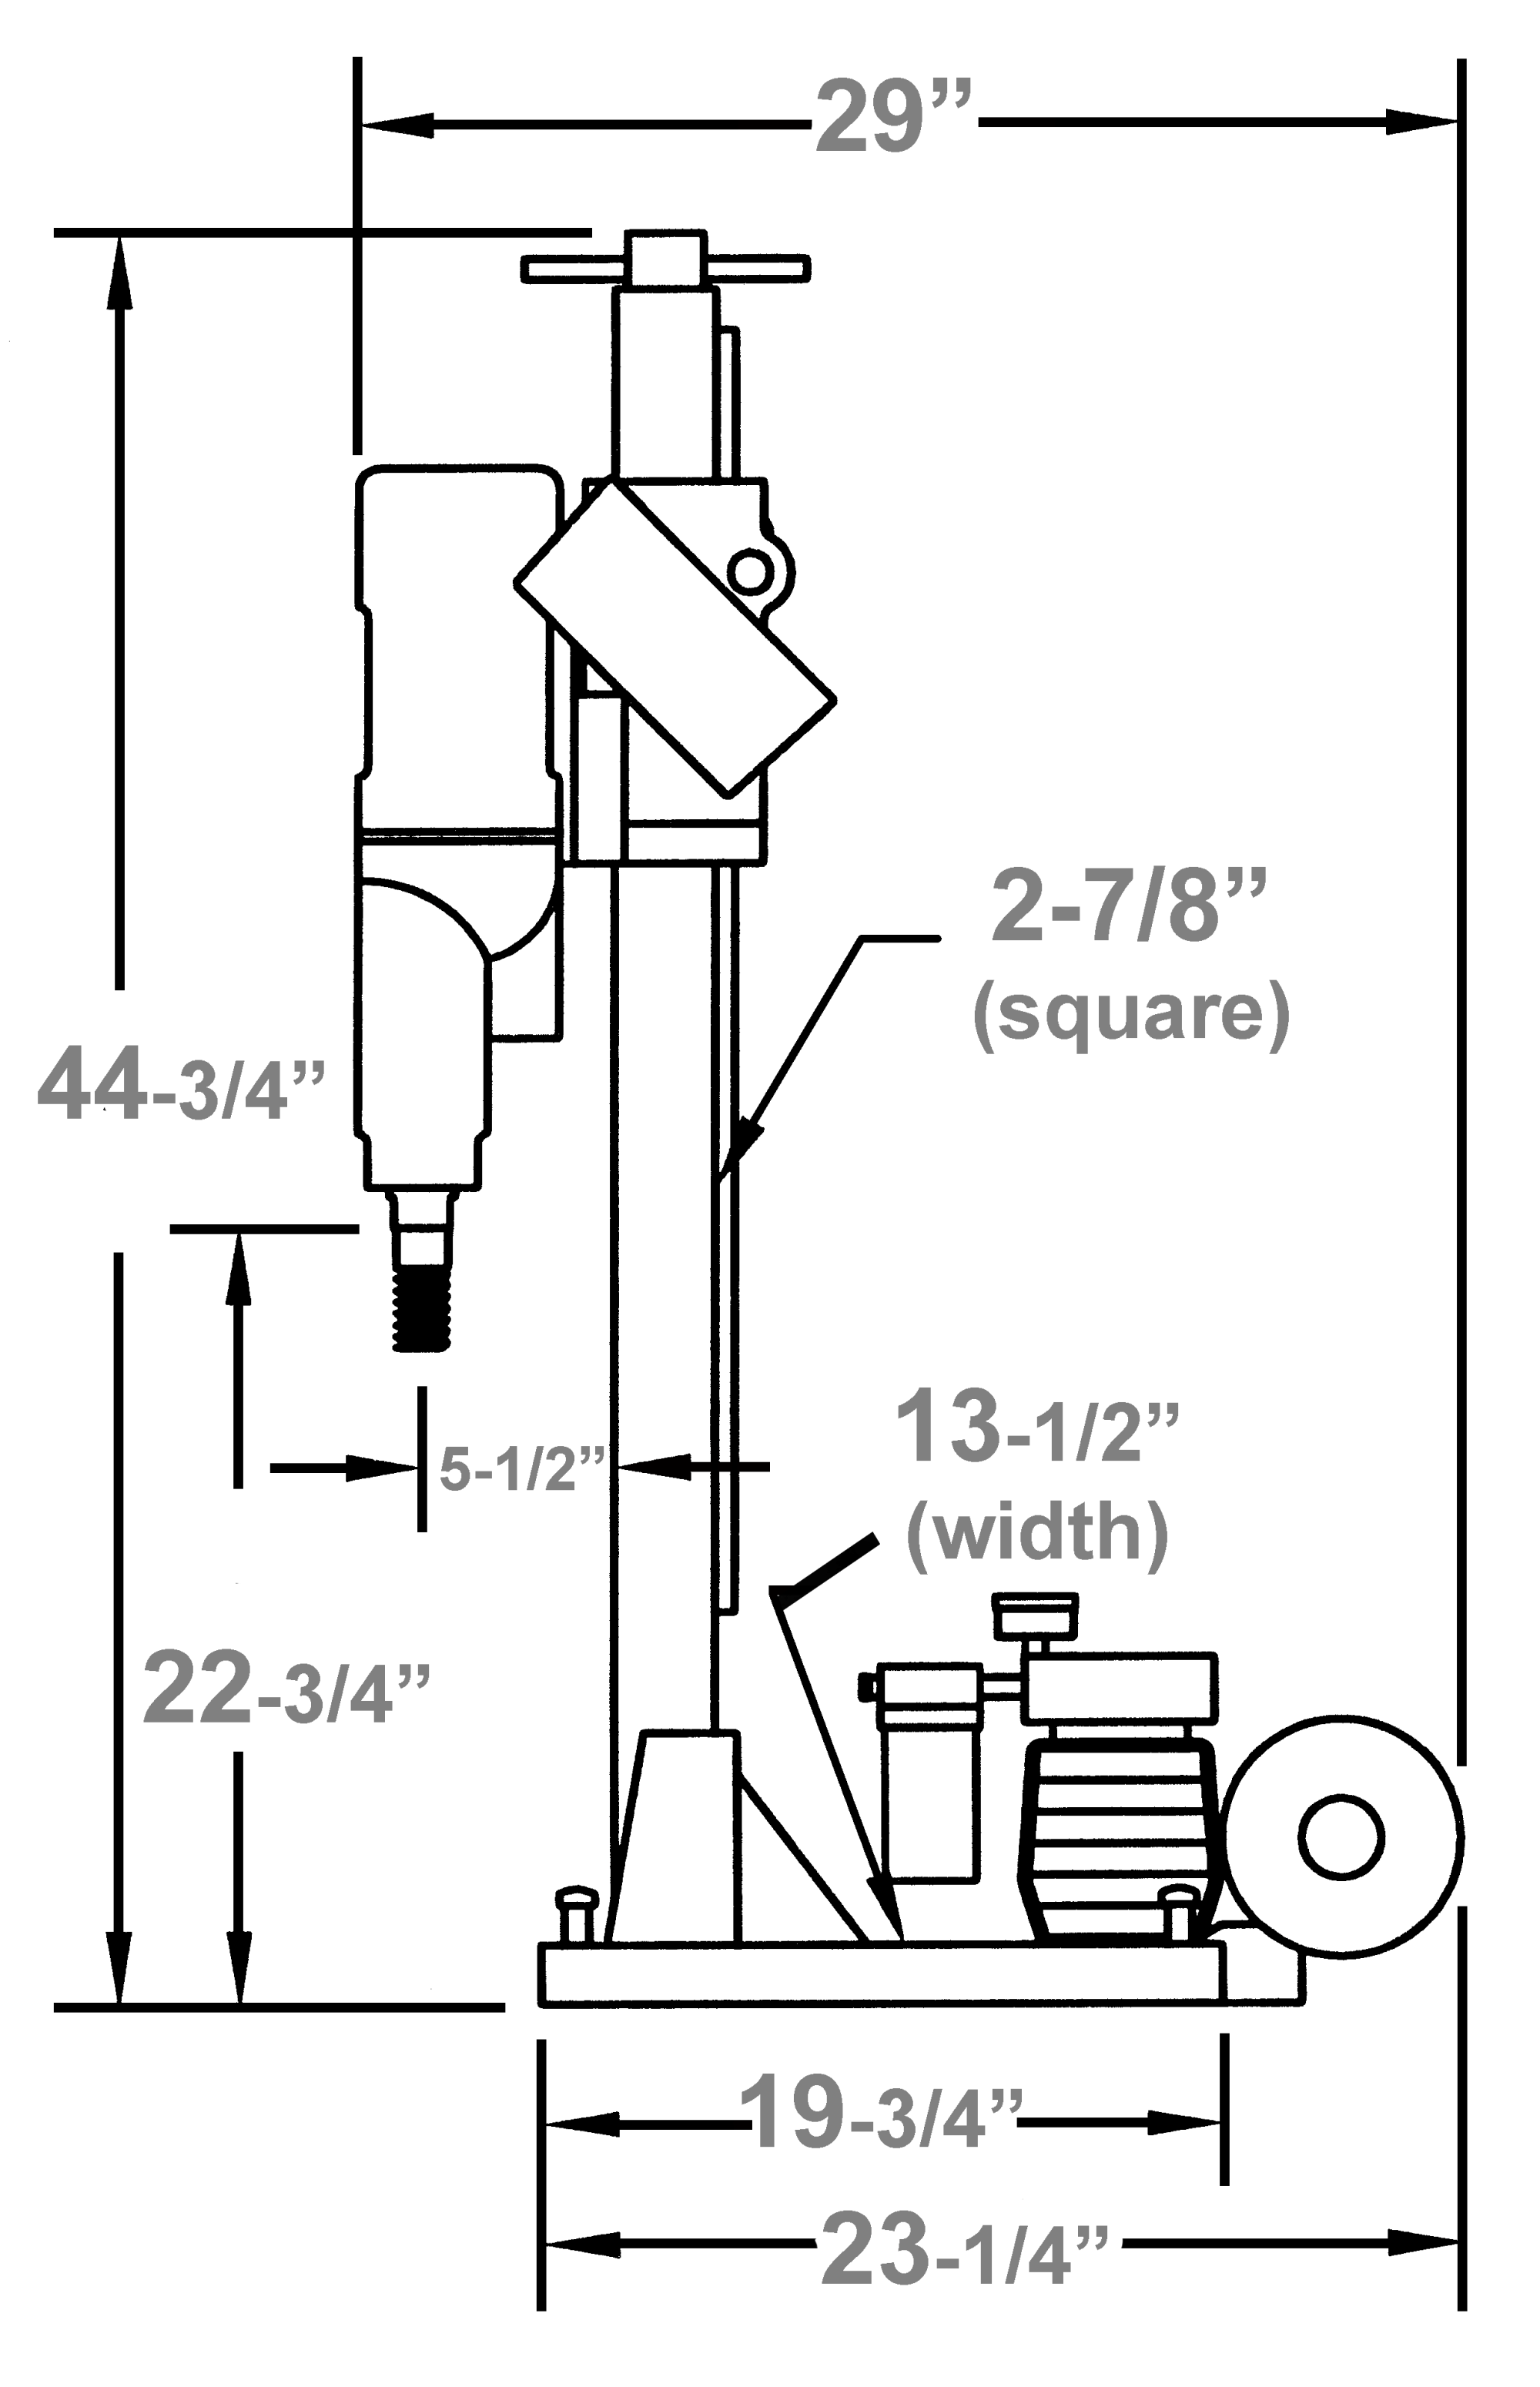 hight resolution of  m 1 combination location to drill anchor hole 12 1 2